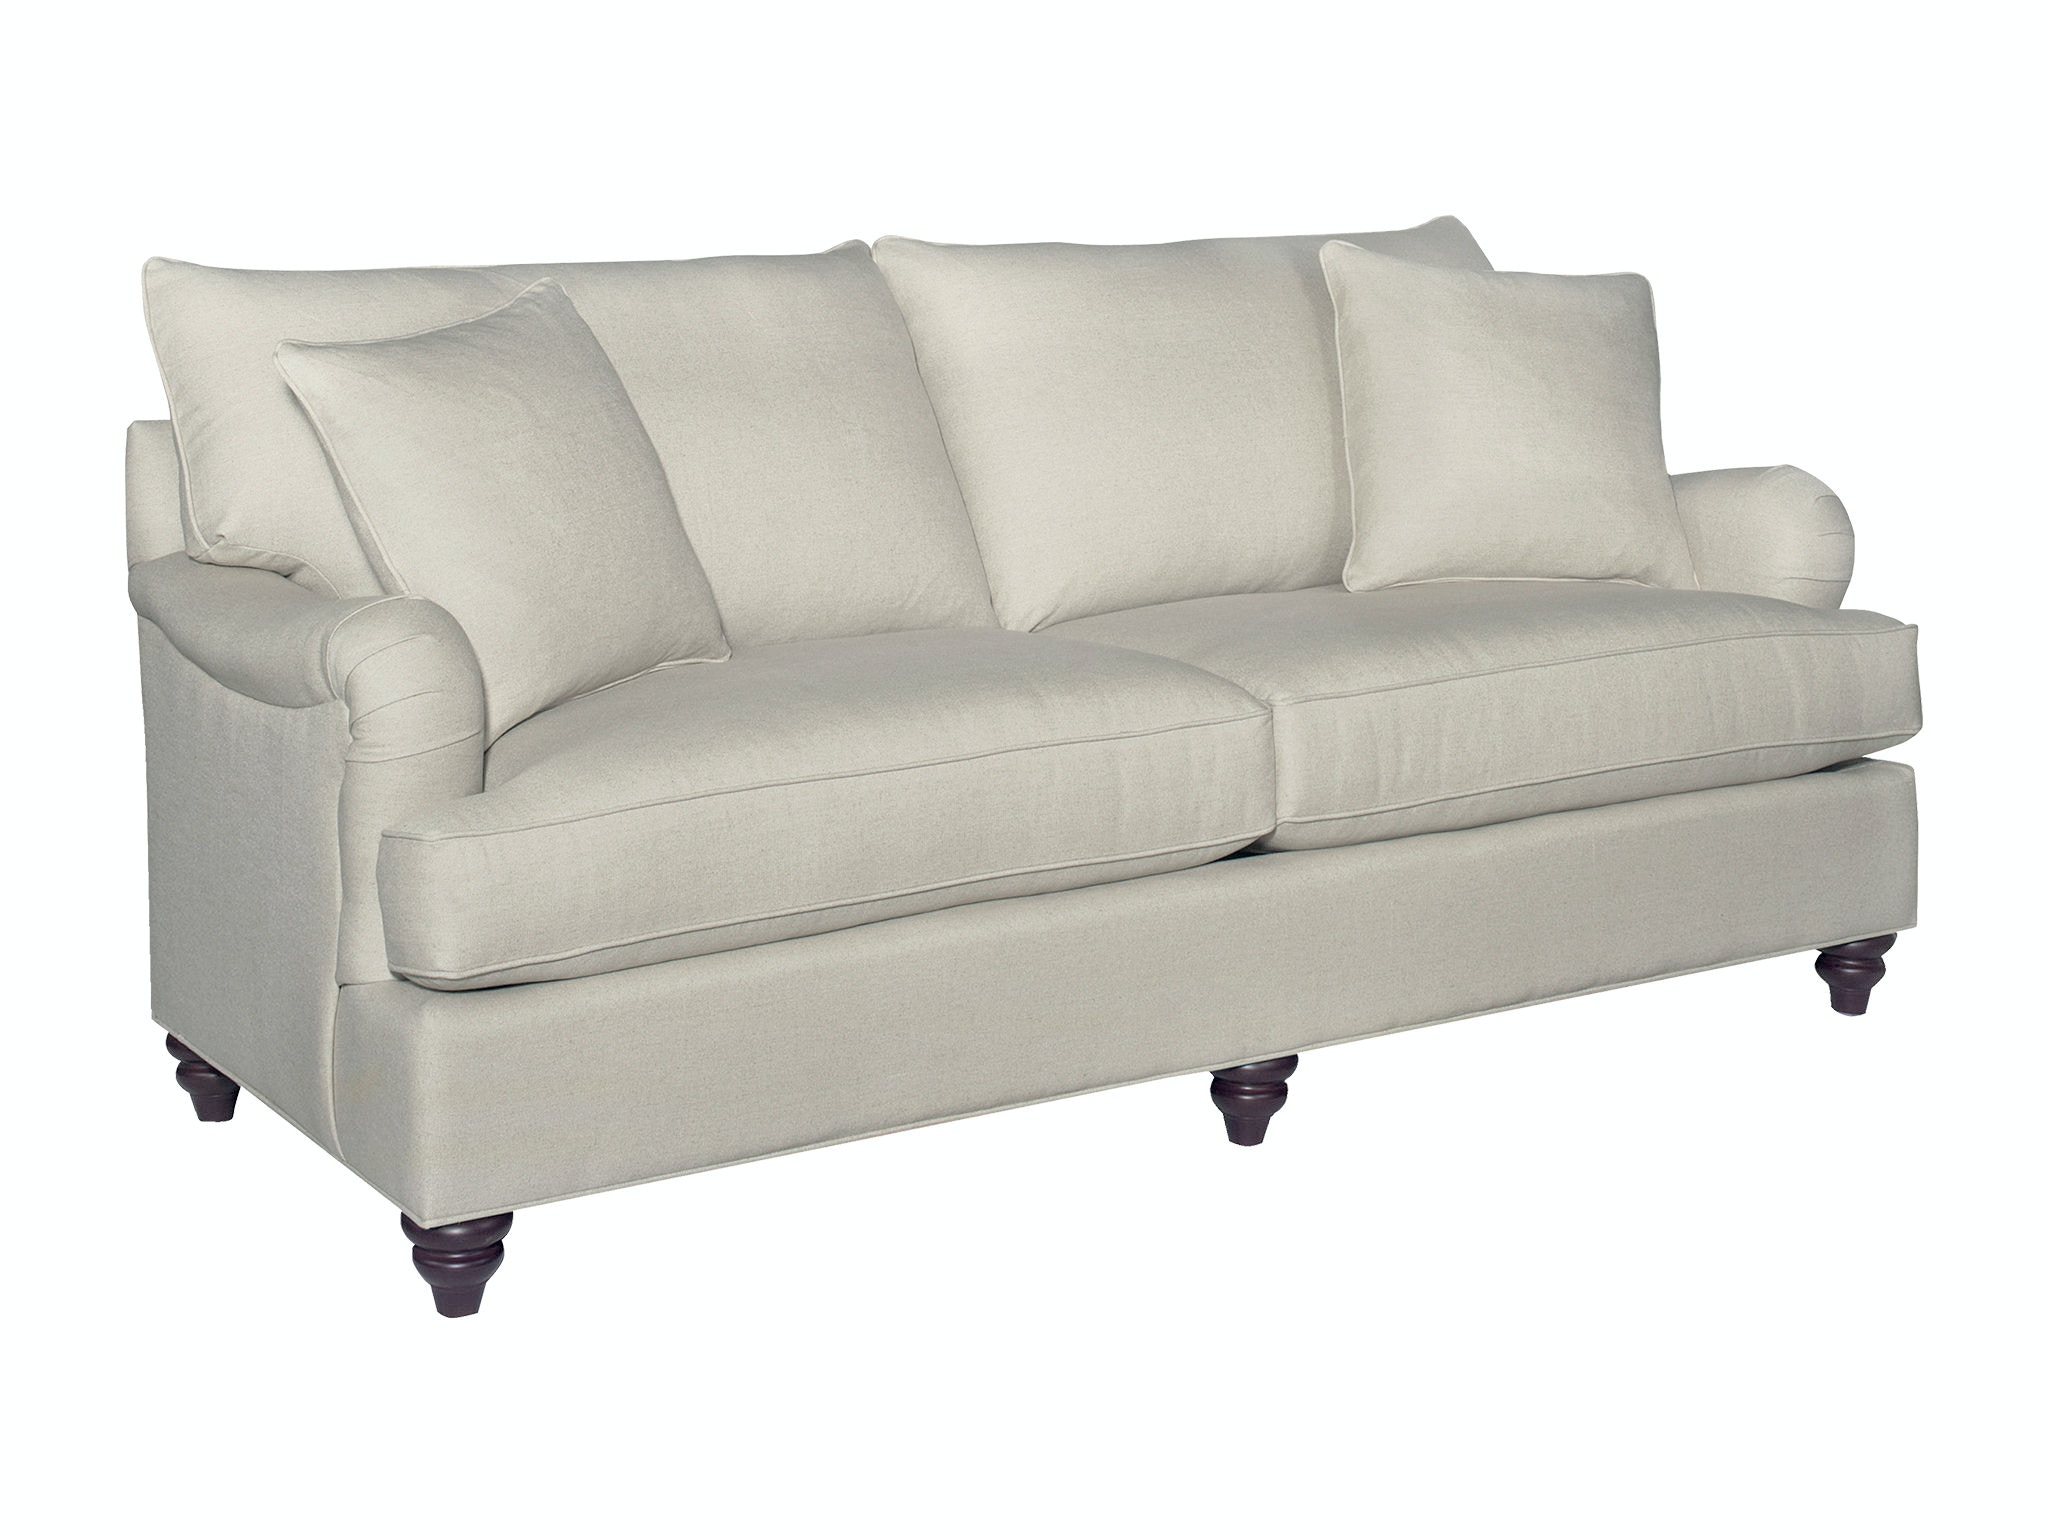 schnadig sofa 9090 beds and armchairs thomasville living room ella 1718 11 whitley